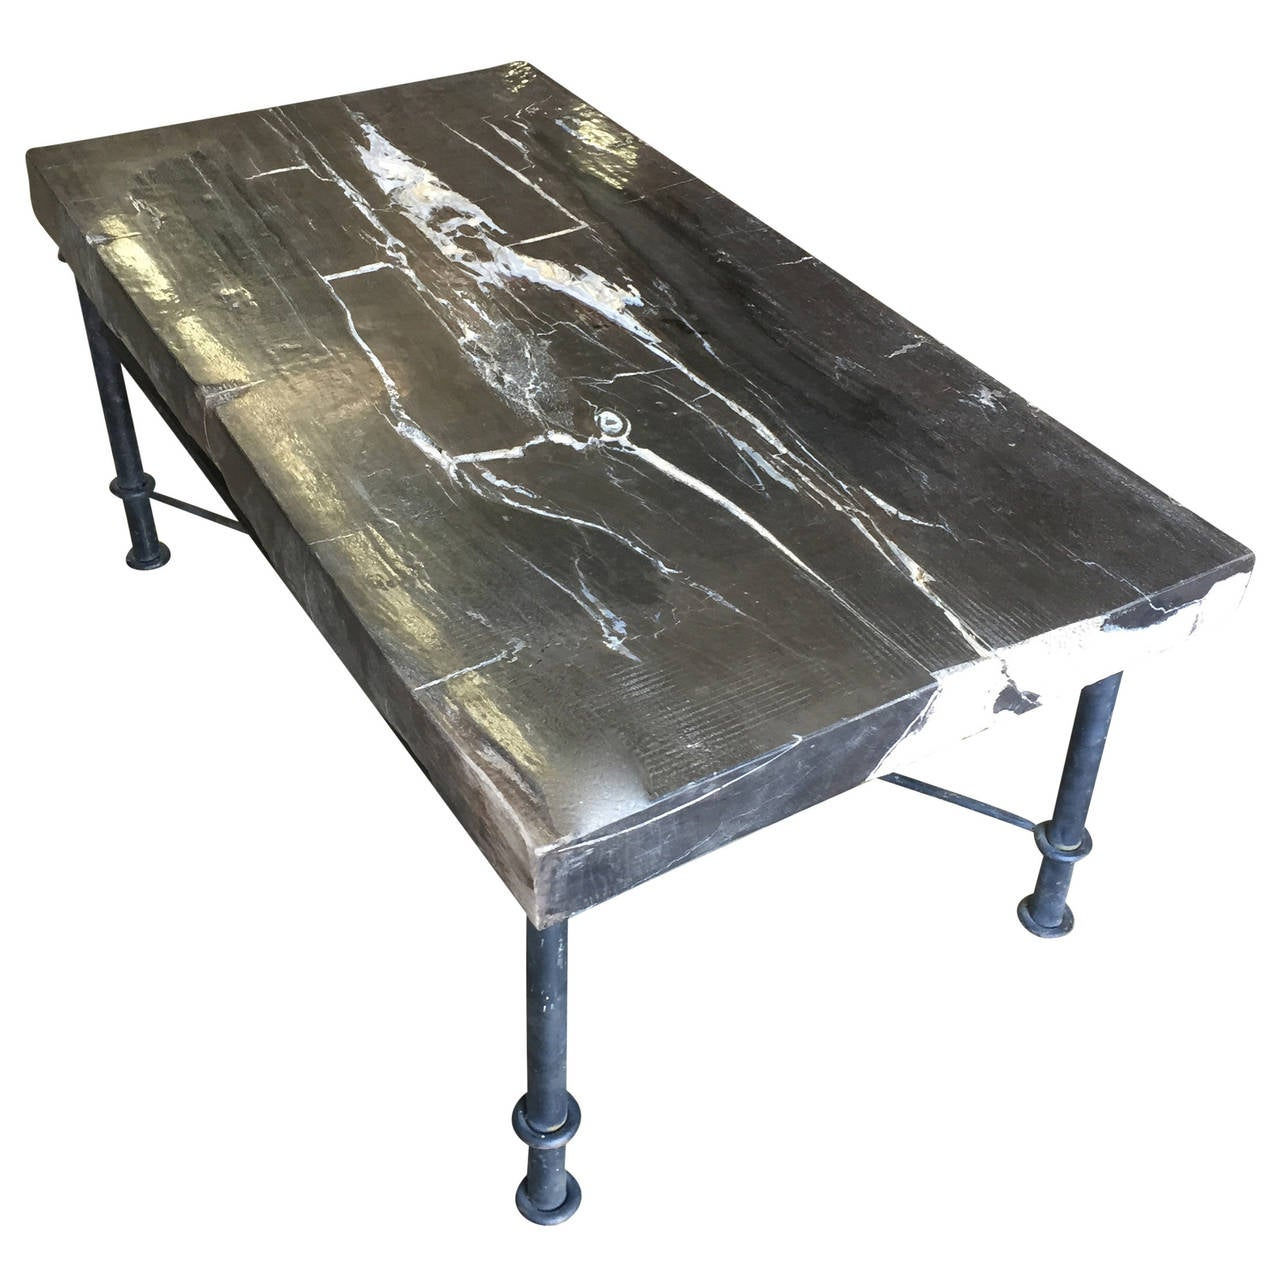 Petrified Wood Slab Coffee Table With Iron Base At Stdibs